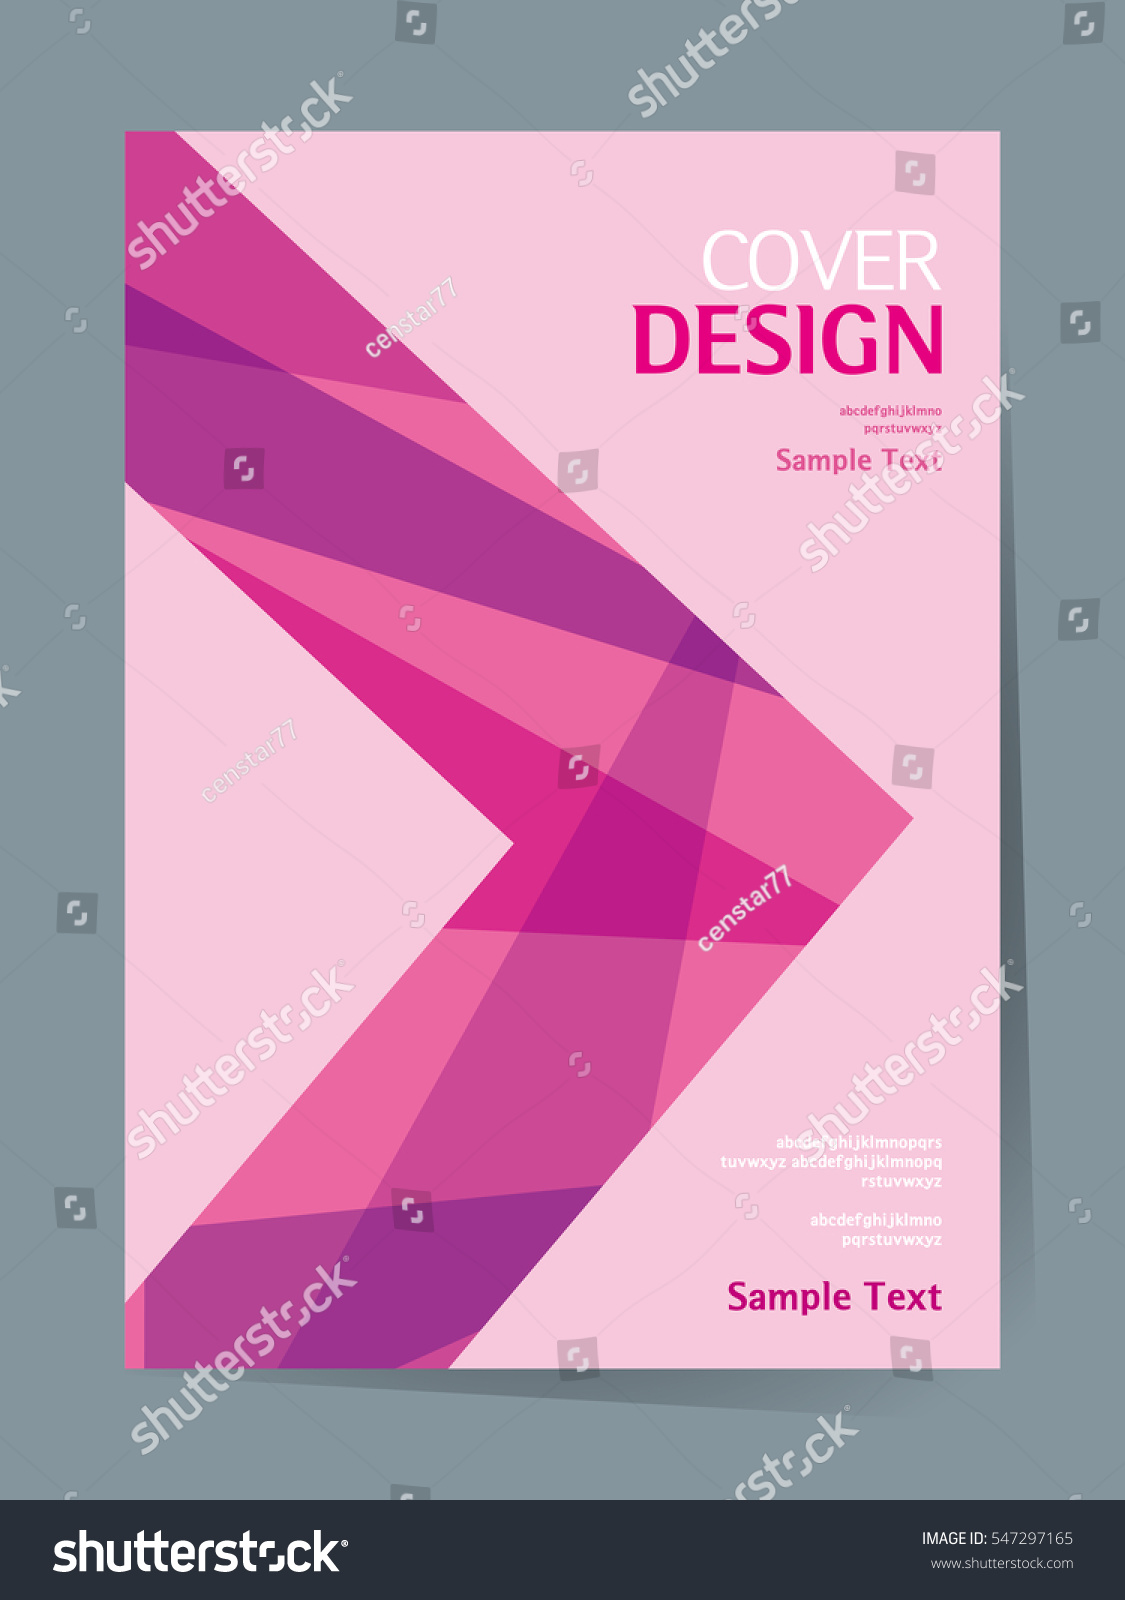 Book cover design vector template a4 stock vector for Design a book jacket template